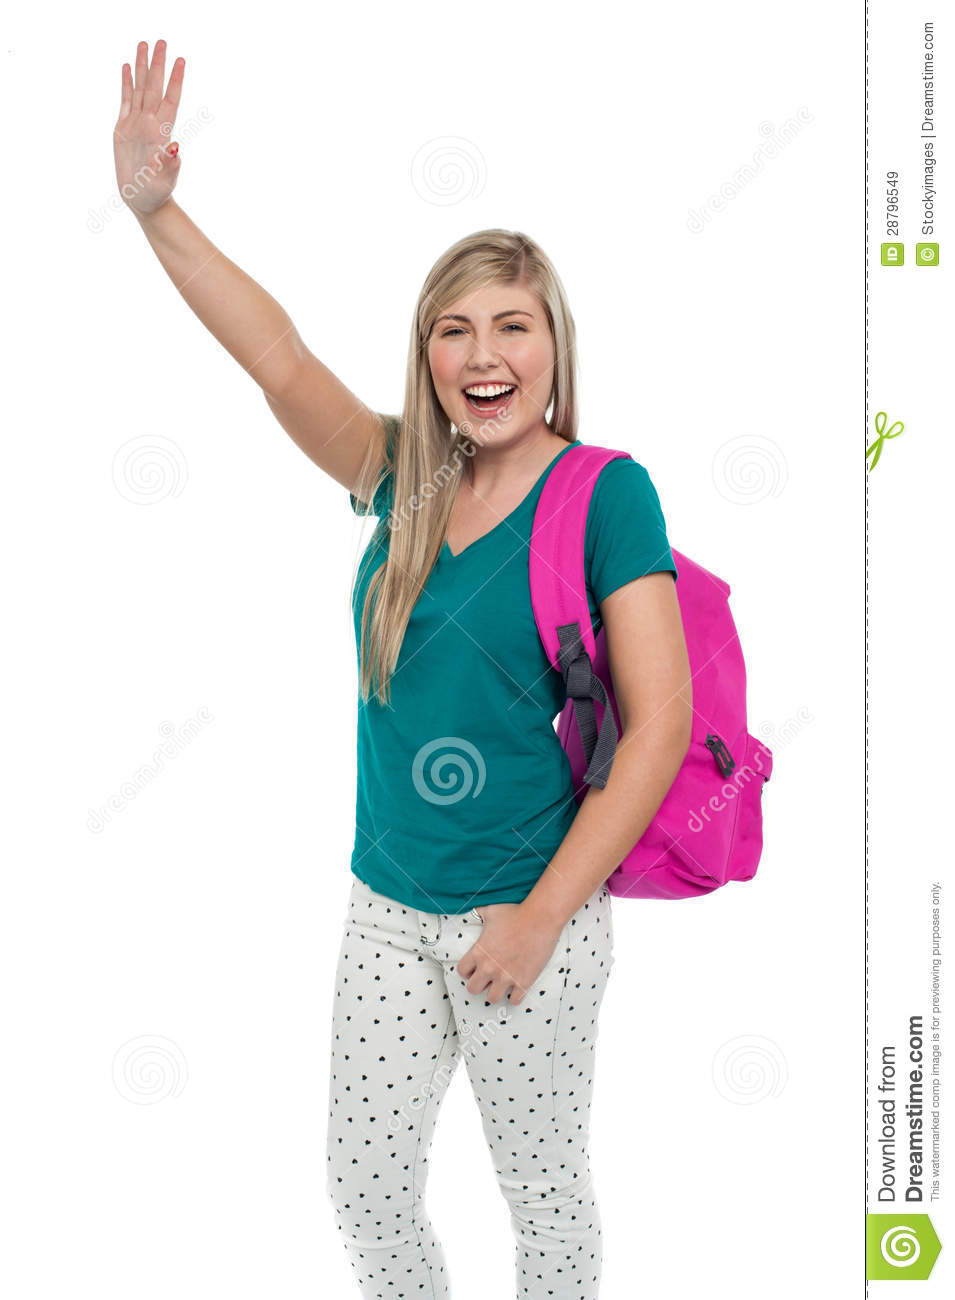 Female Student With Her Hand Raised Royalty Free Stock